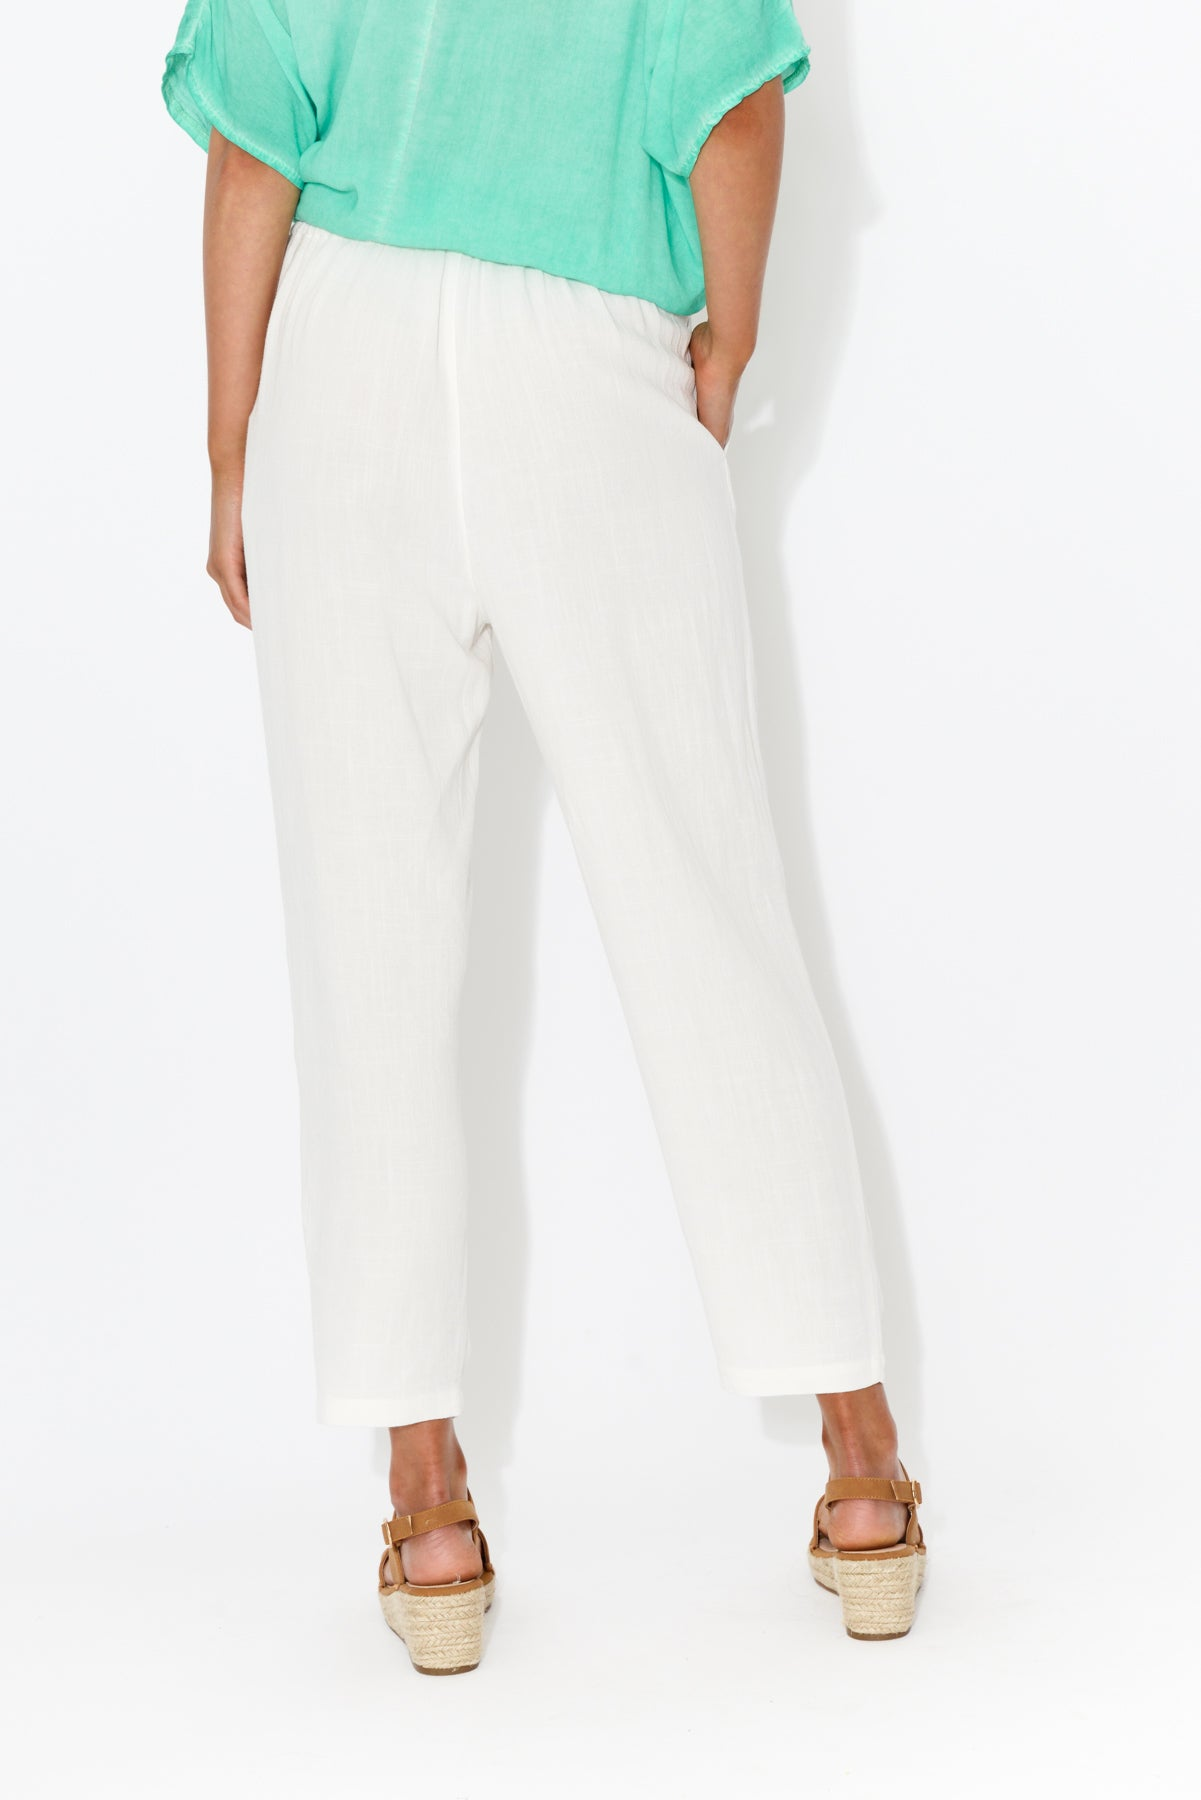 Imogen White Pant - Blue Bungalow